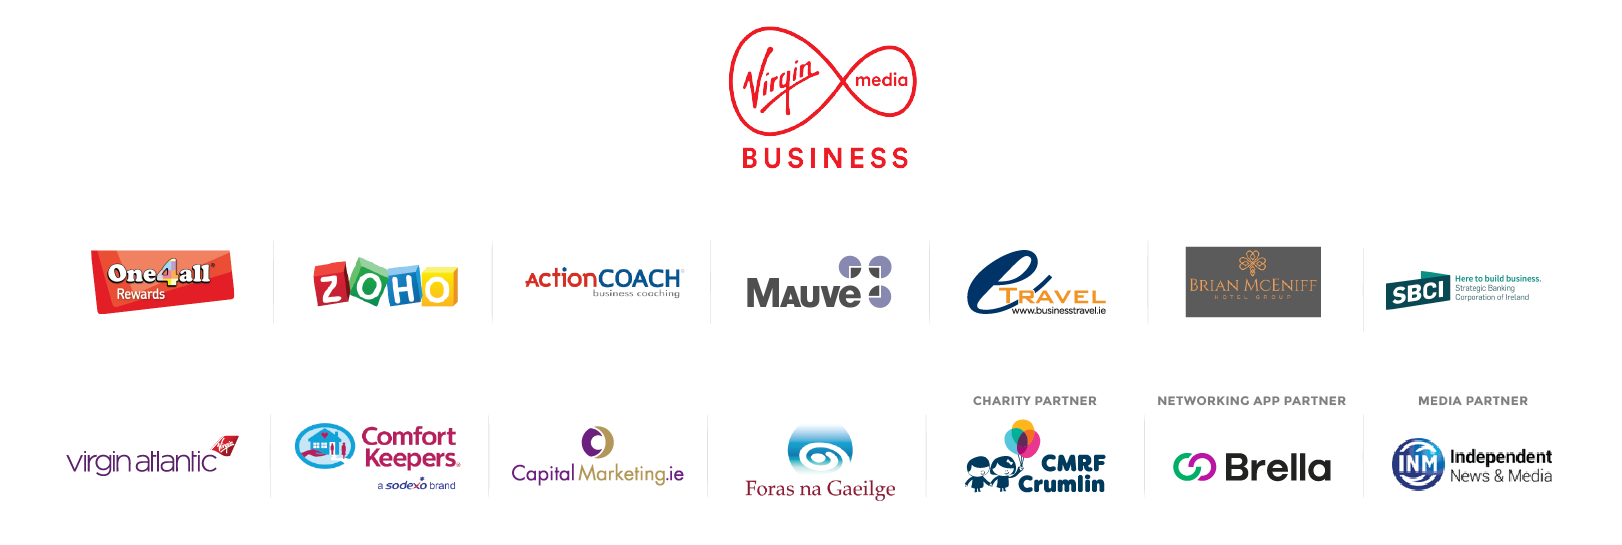 All Ireland Summit 2019 Sponsors